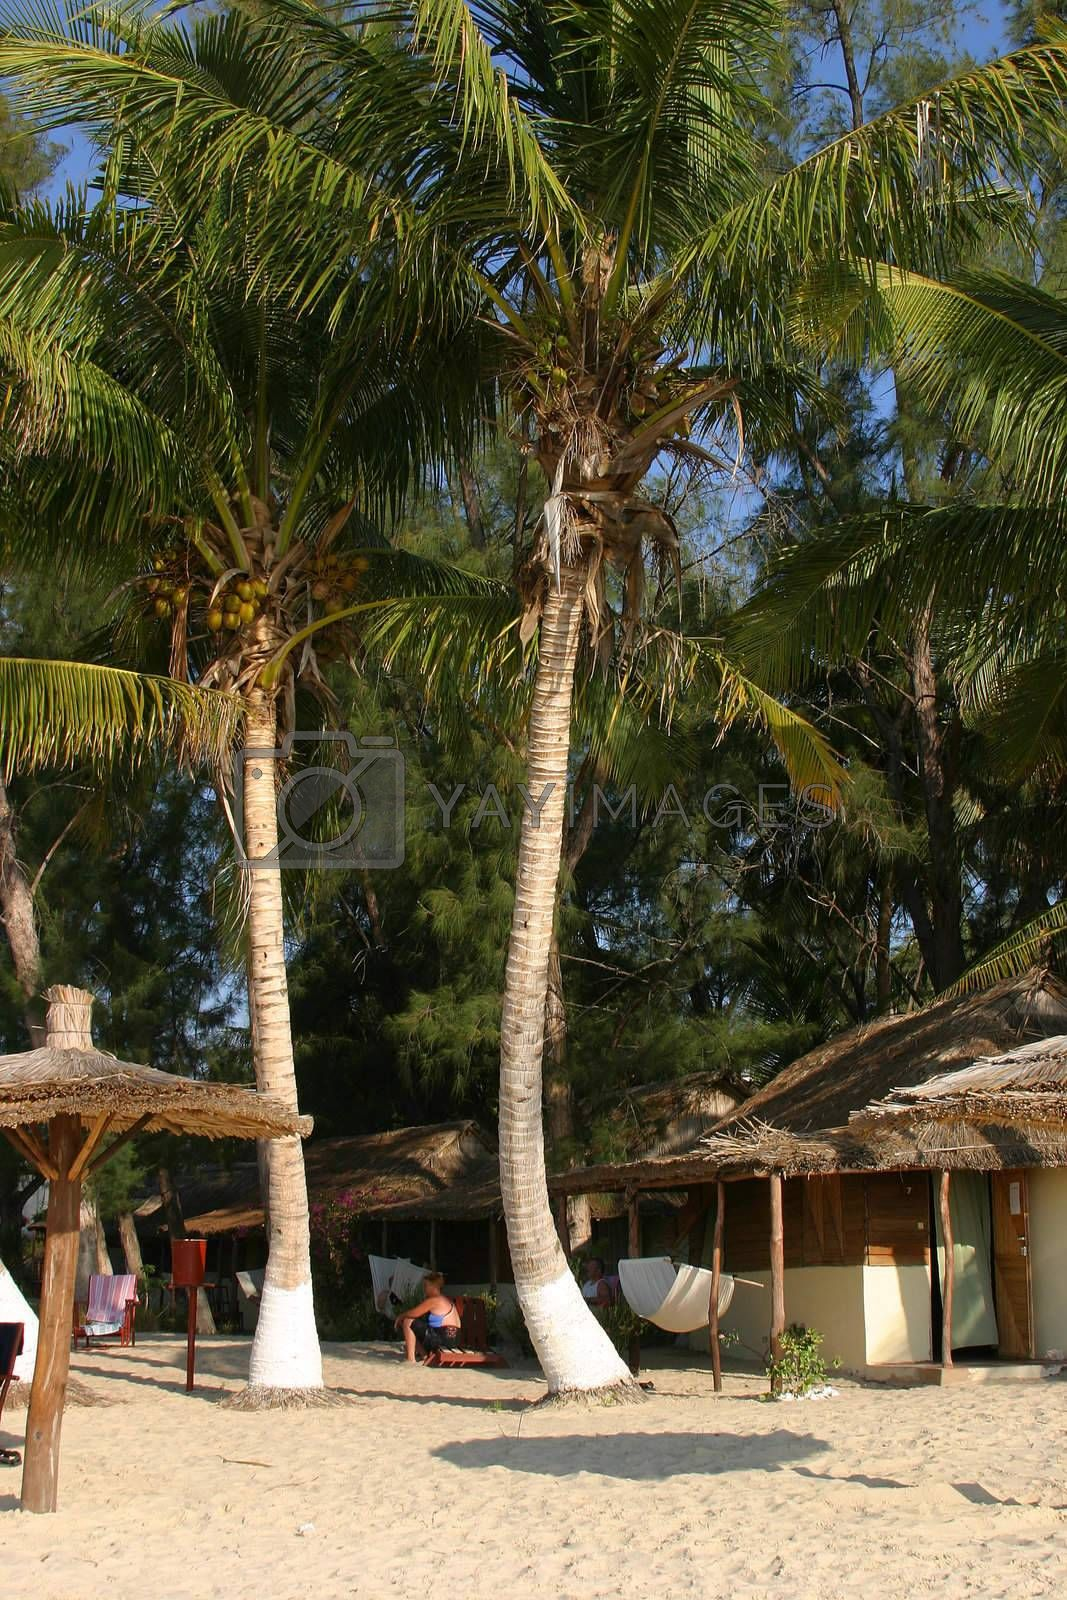 Beautiful palmtrees at the beach in Ifaty, Madagascar